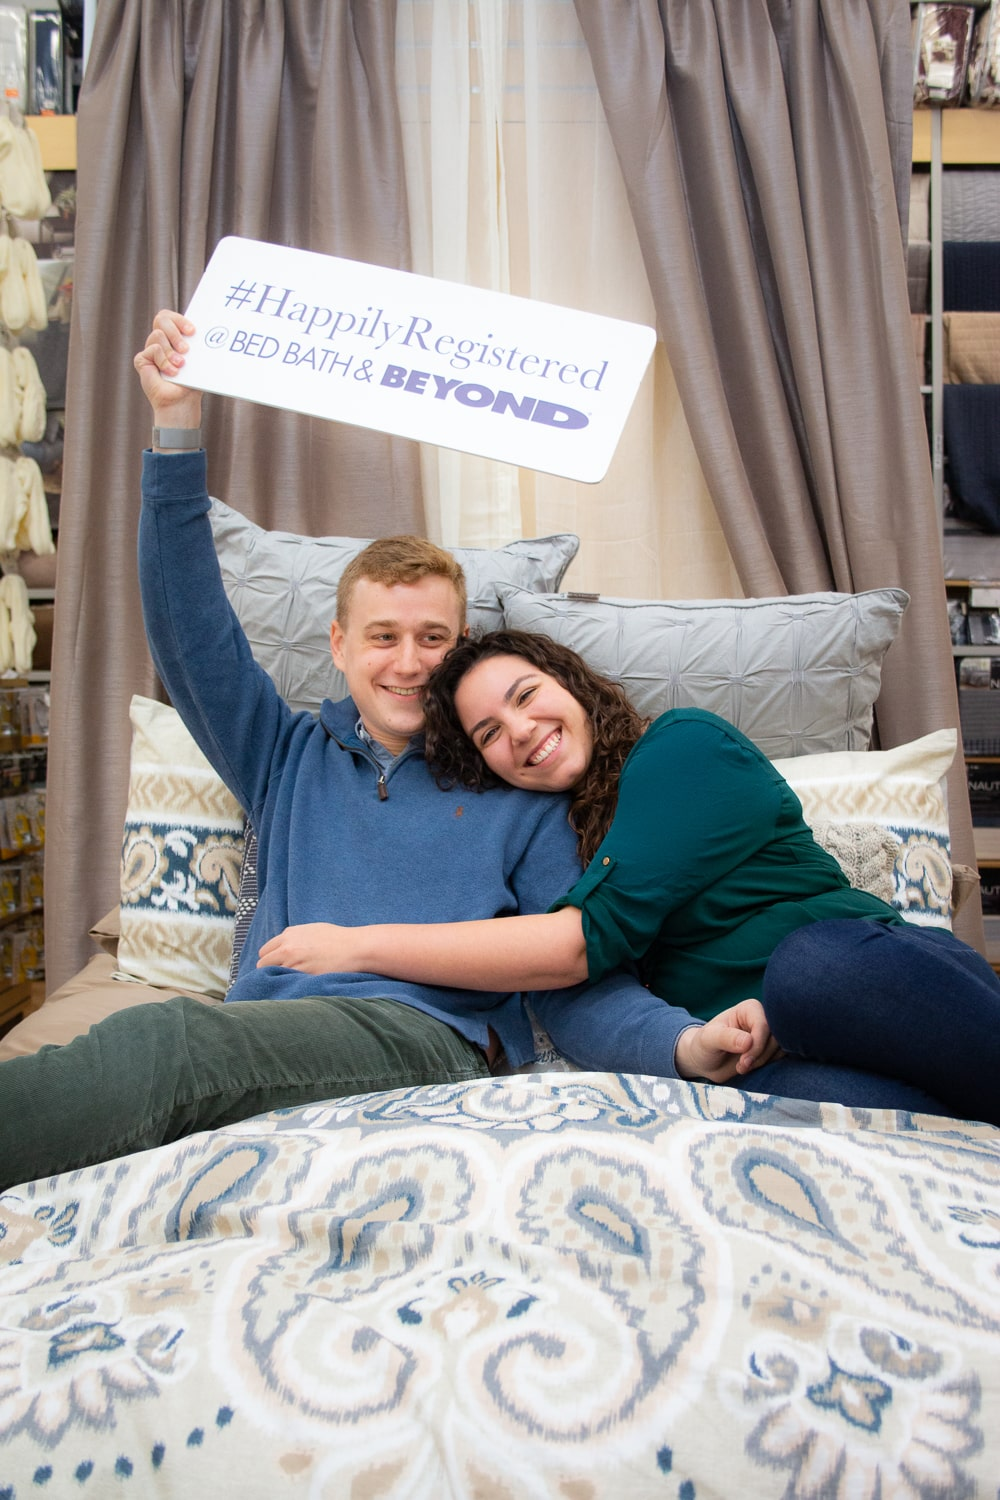 Create the Perfect Wedding Registry with Bed Bath & Beyond! #happilyregistered